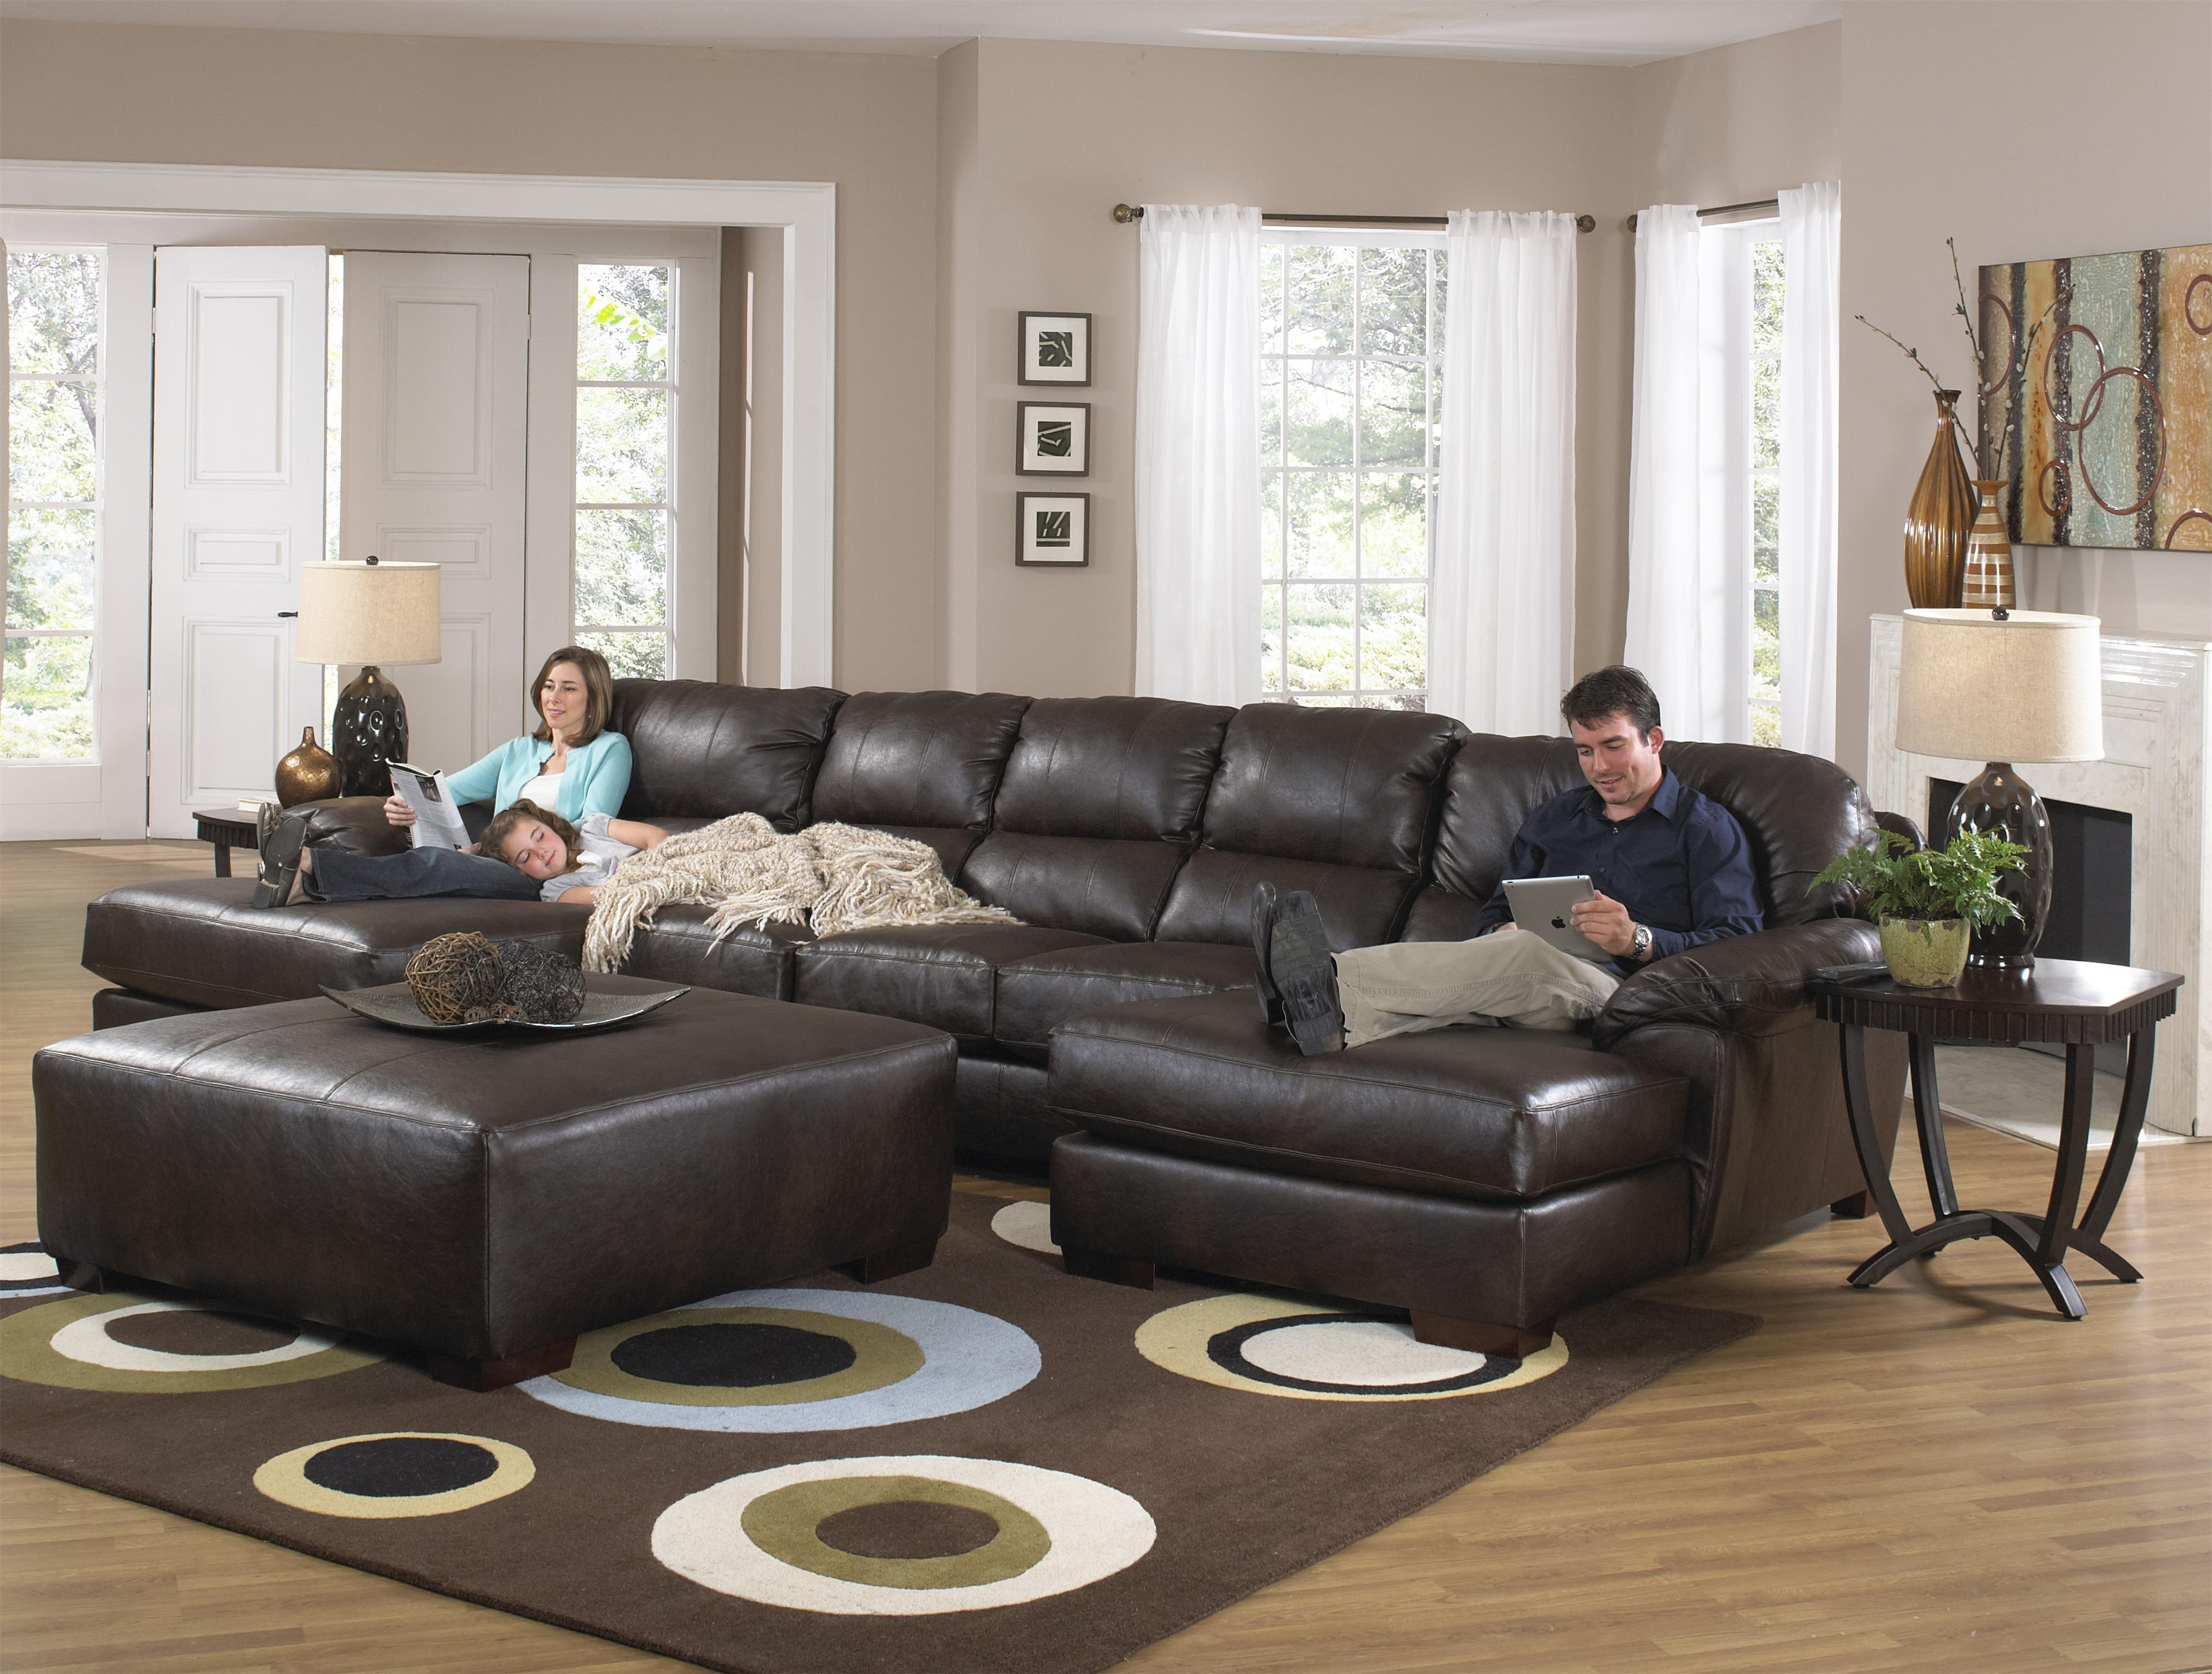 Large Sectional Sofa With Ottoman | Aifaresidency Pertaining To Sofas With Large Ottoman (View 5 of 10)